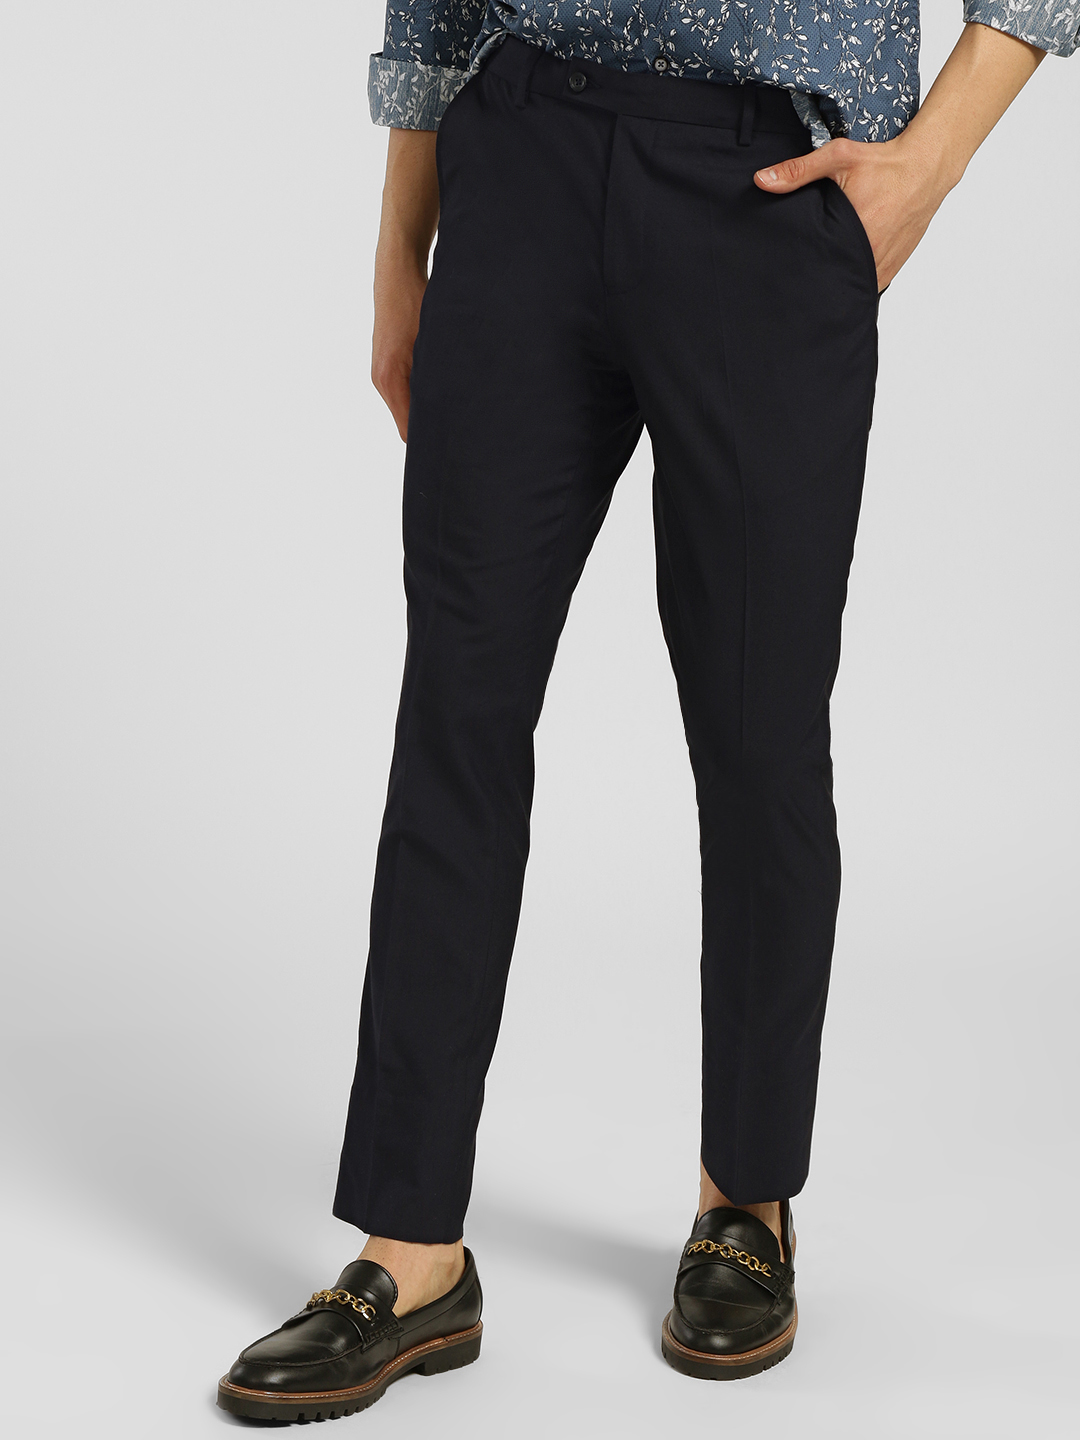 Indigo Nation Blue Basic Slim Fit Trousers 1